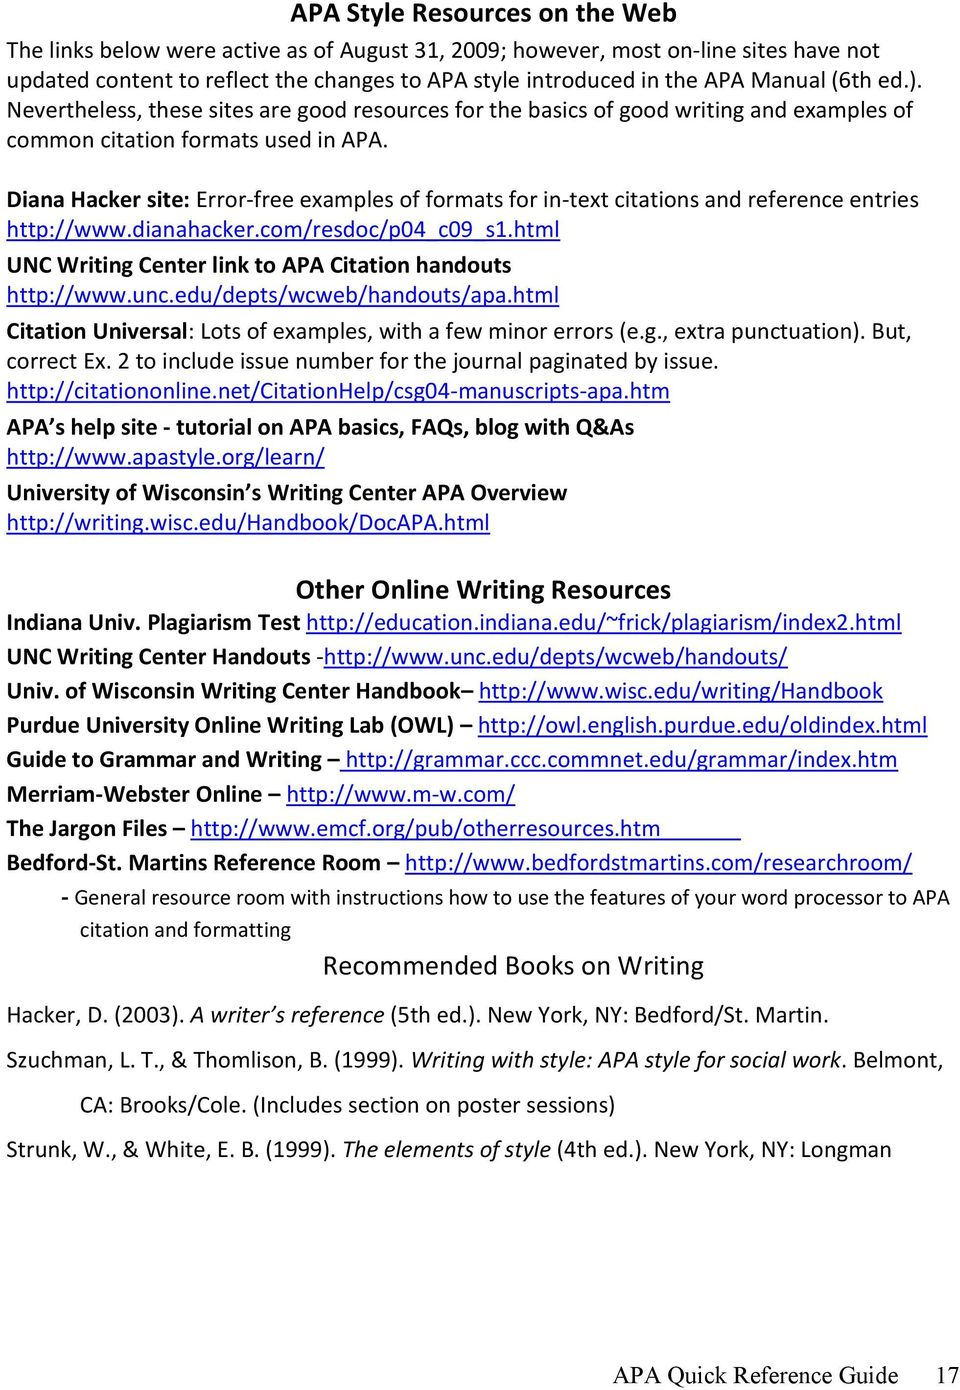 Diana Hacker site: Error-free examples of formats for in-text citations and reference entries http://www.dianahacker.com/resdoc/p04_c09_s1.